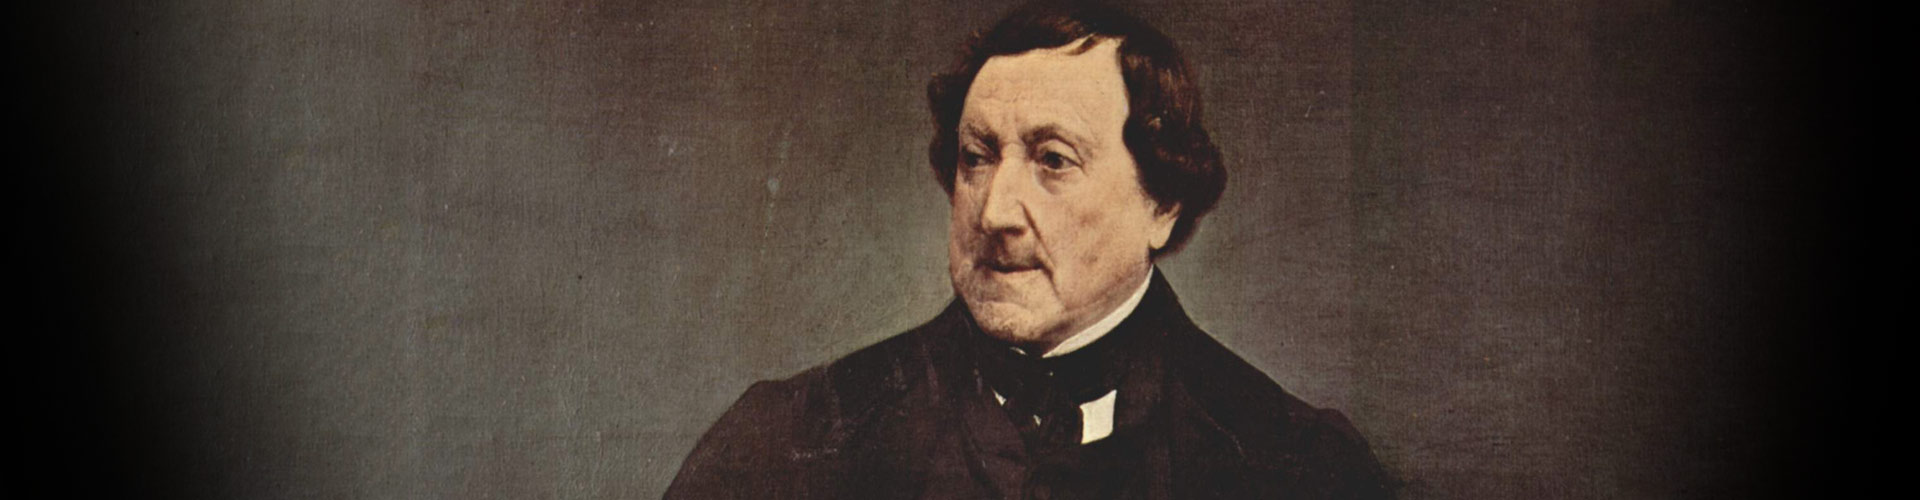 Gioachino Rossini in a painting by Francesco Hayez, 1870.